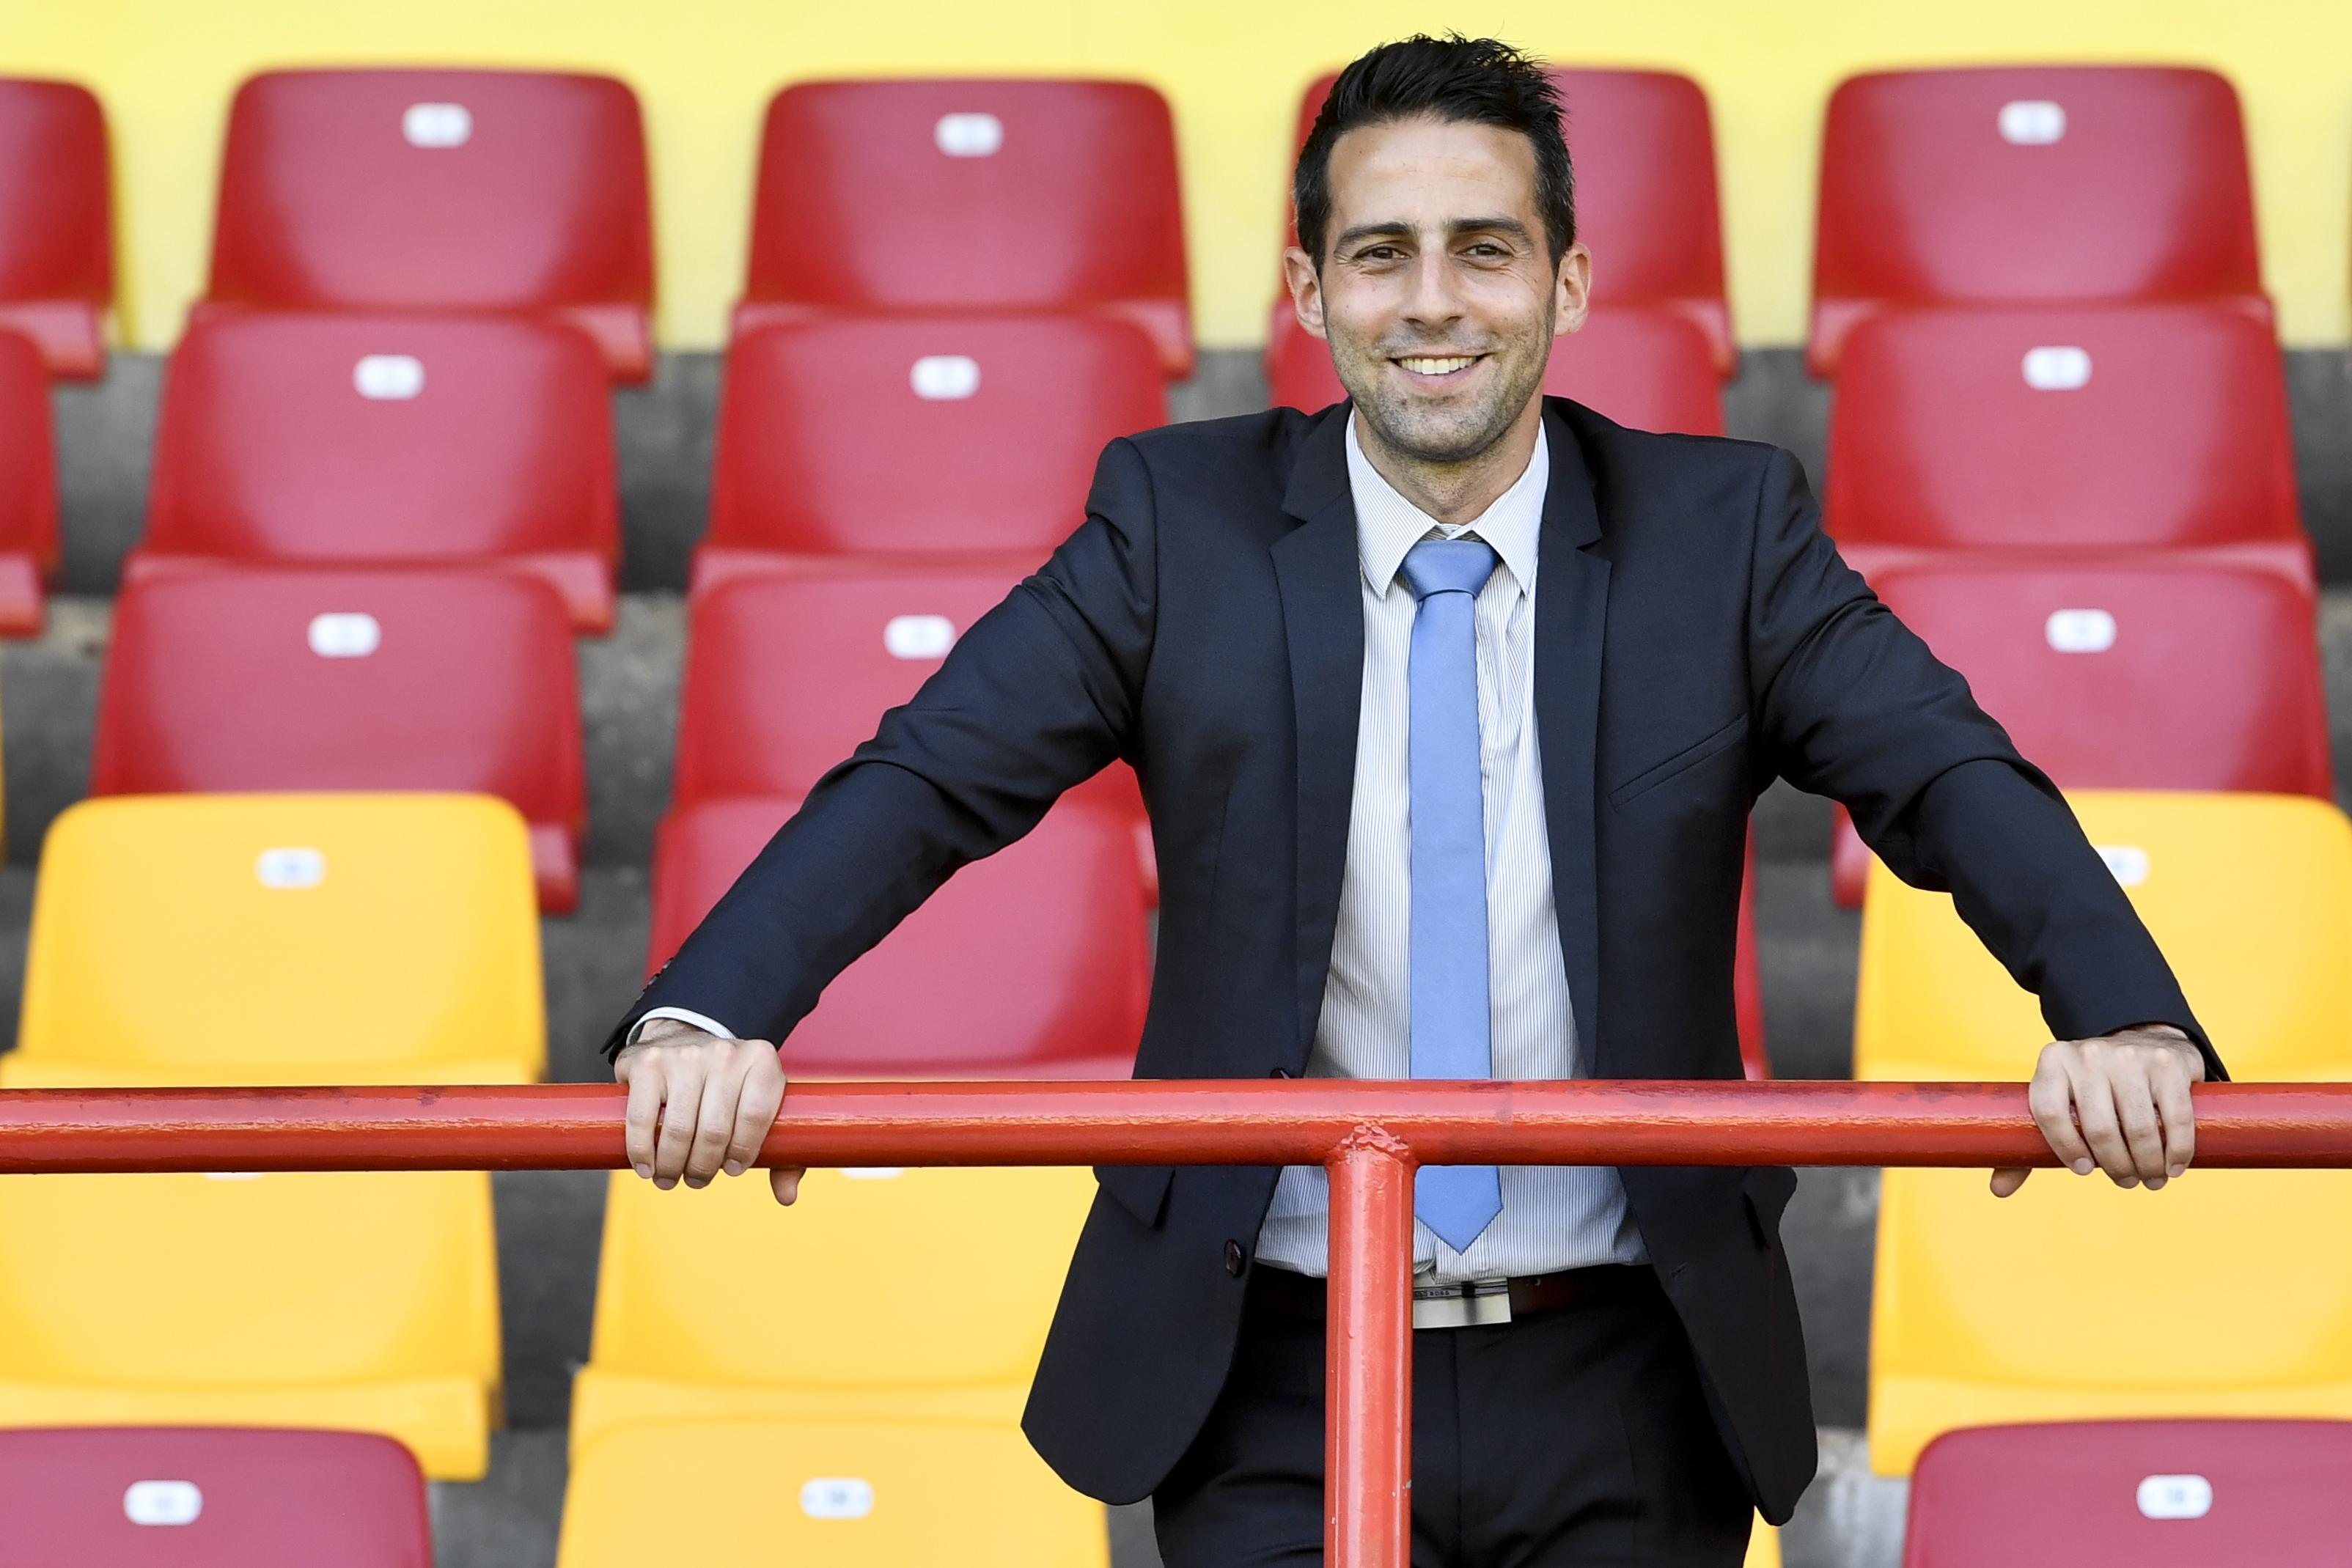 SOCCER KV MECHELEN NEW HEAD COACH